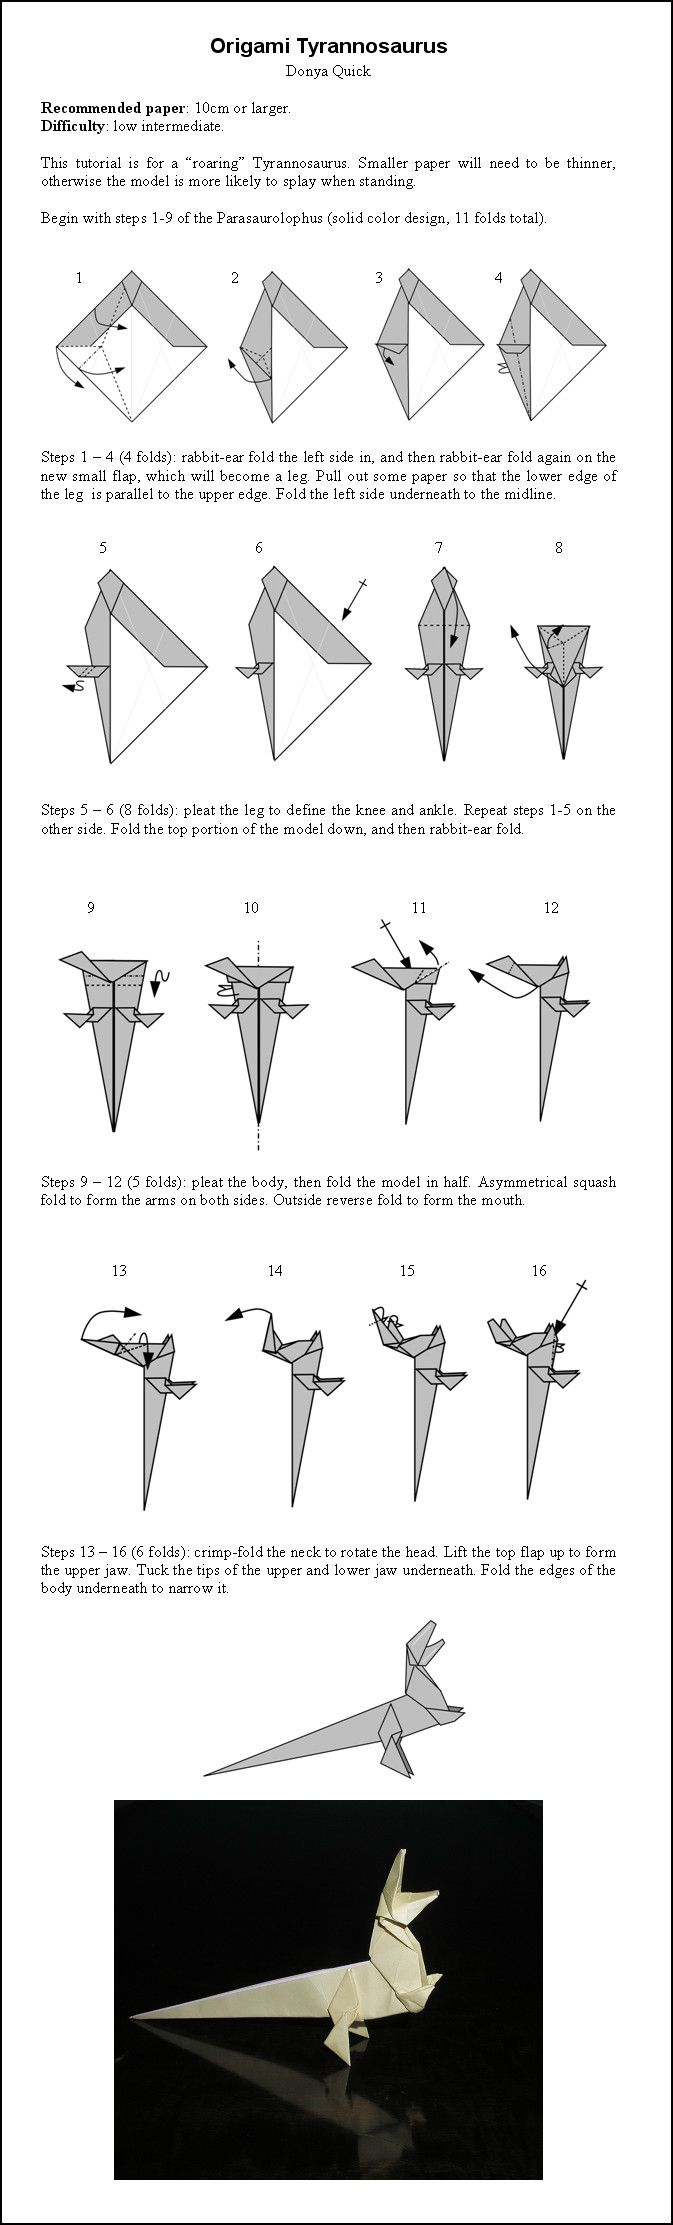 Money Origami Instructions For Beginners Star Wars Diagrams And Crease Patterns Starwarigami Dragon Kids